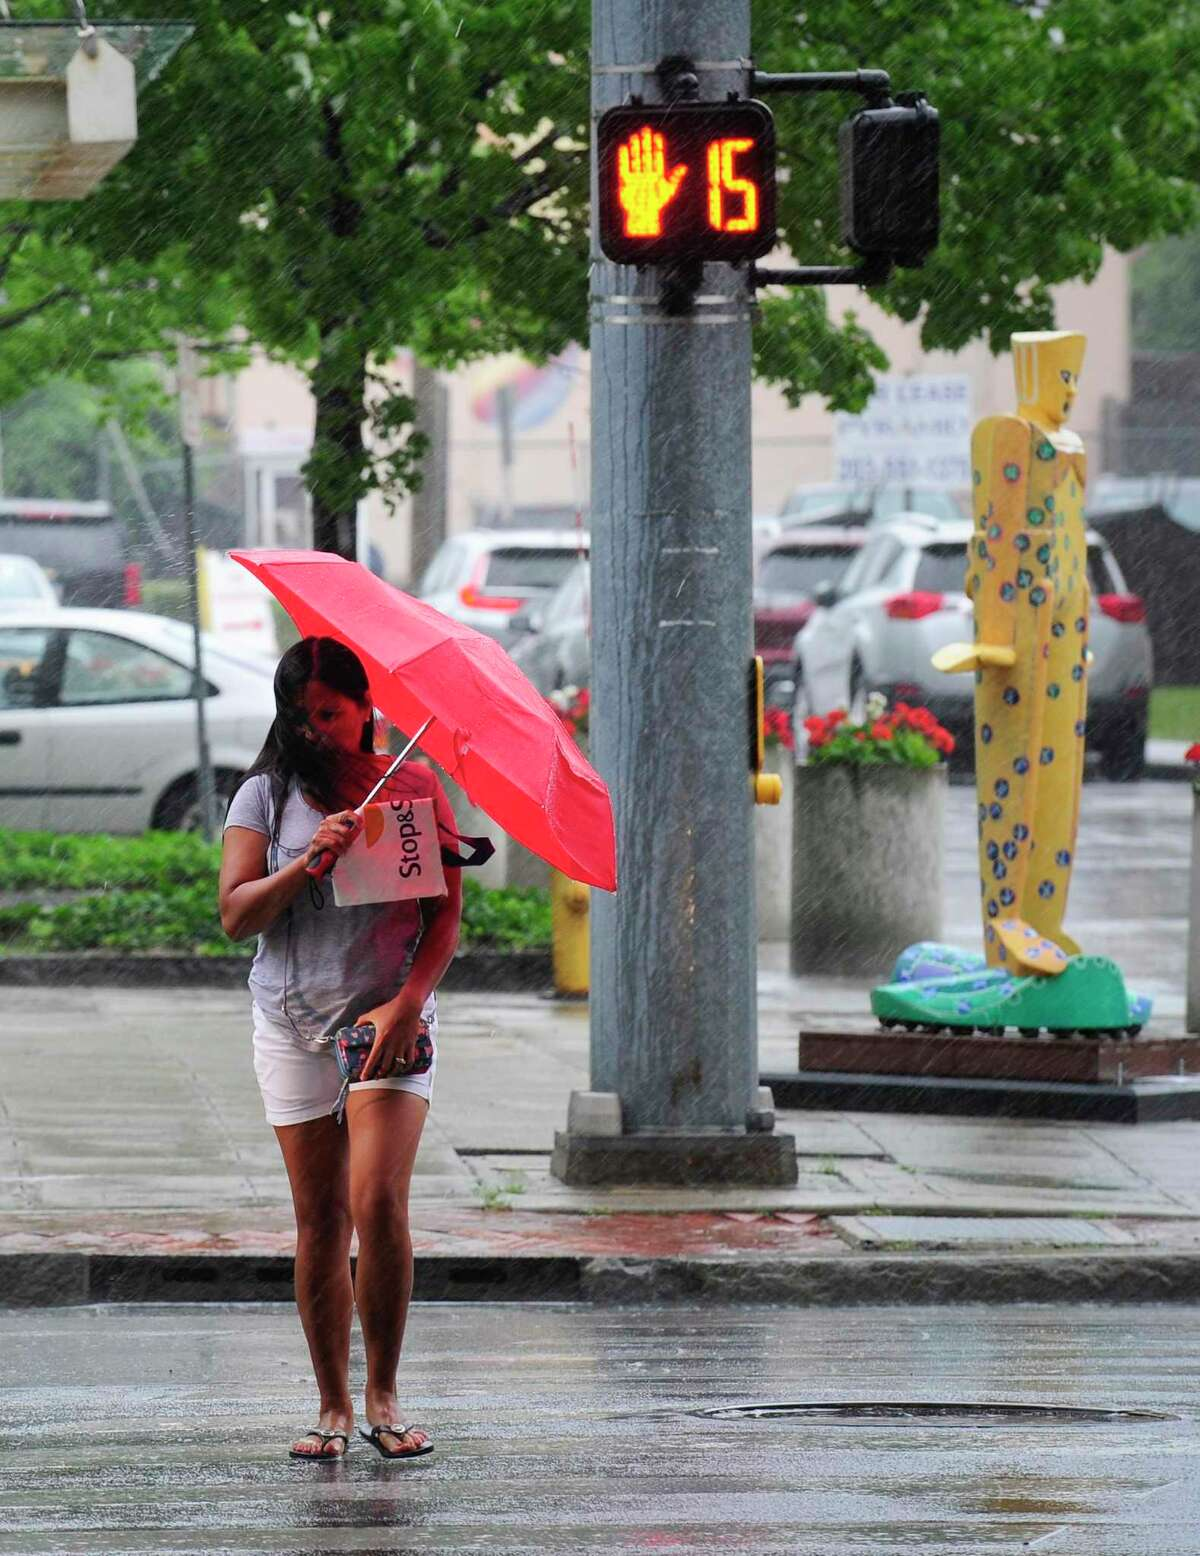 There is a chance of rain throughout the weekend and into Monday and Tuesday, with skies clearing up Wednesday, according to current forecasts for Connecticut.